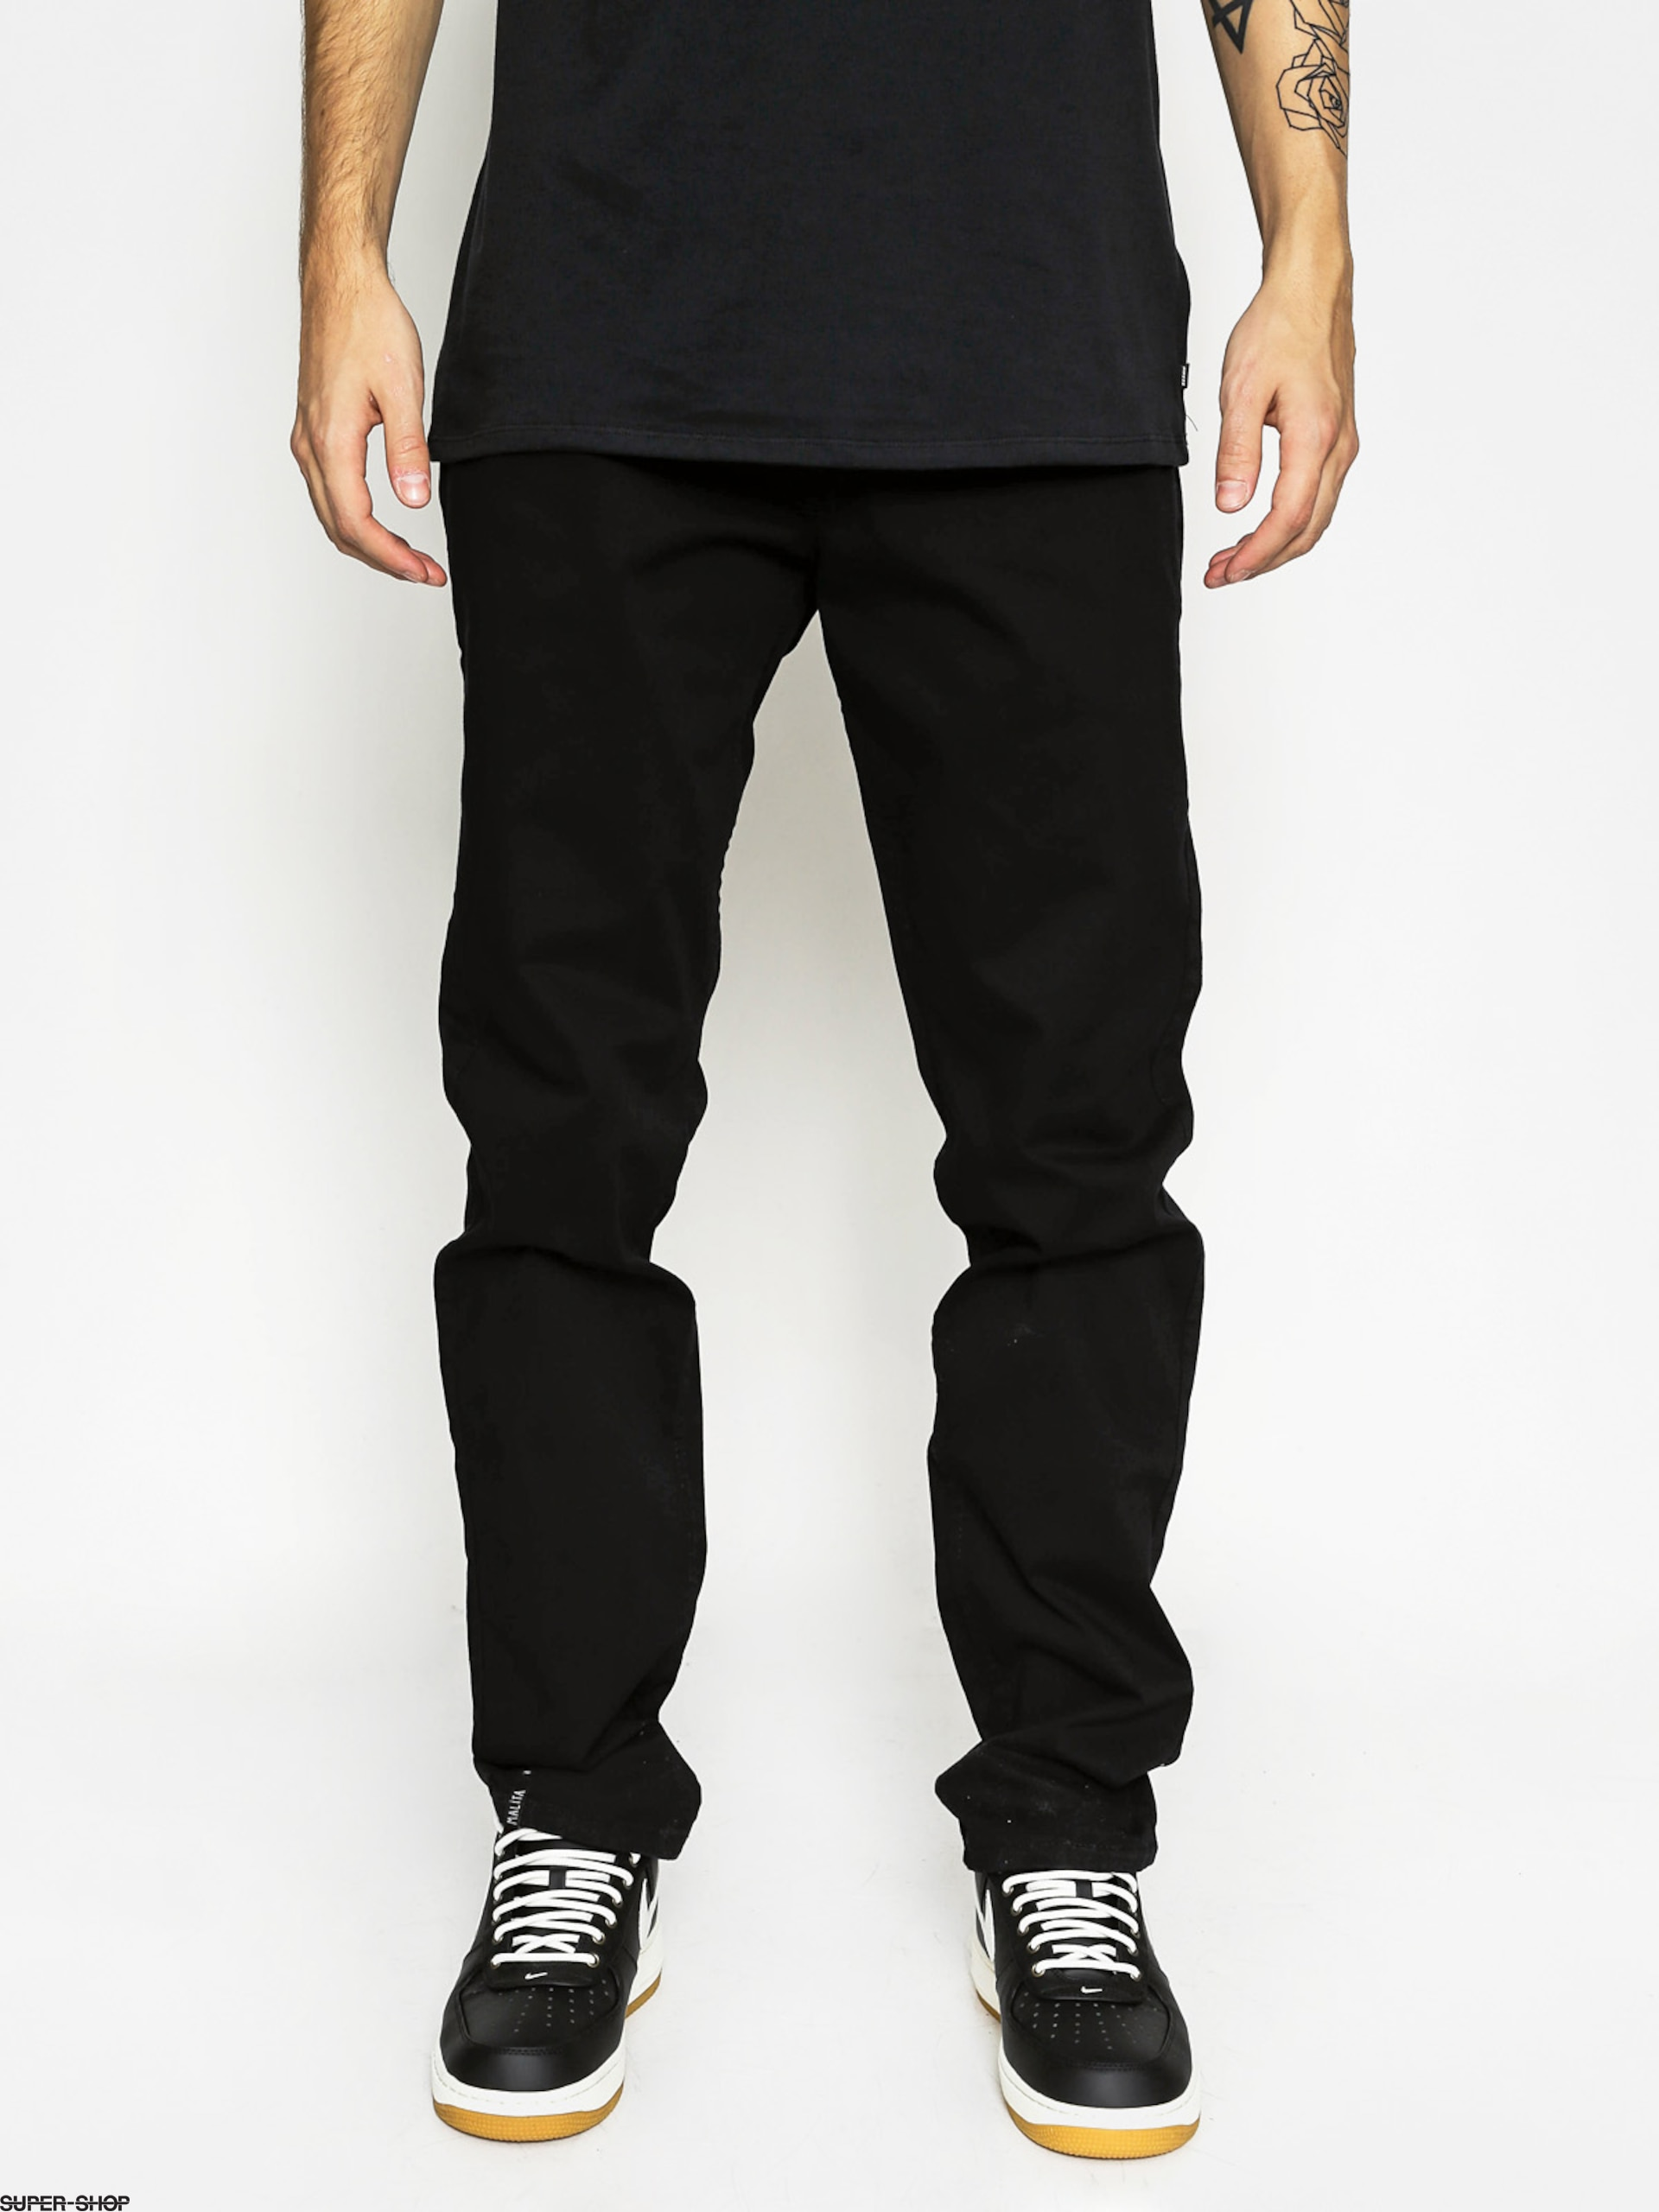 Malita Pants Chino (black/camo)